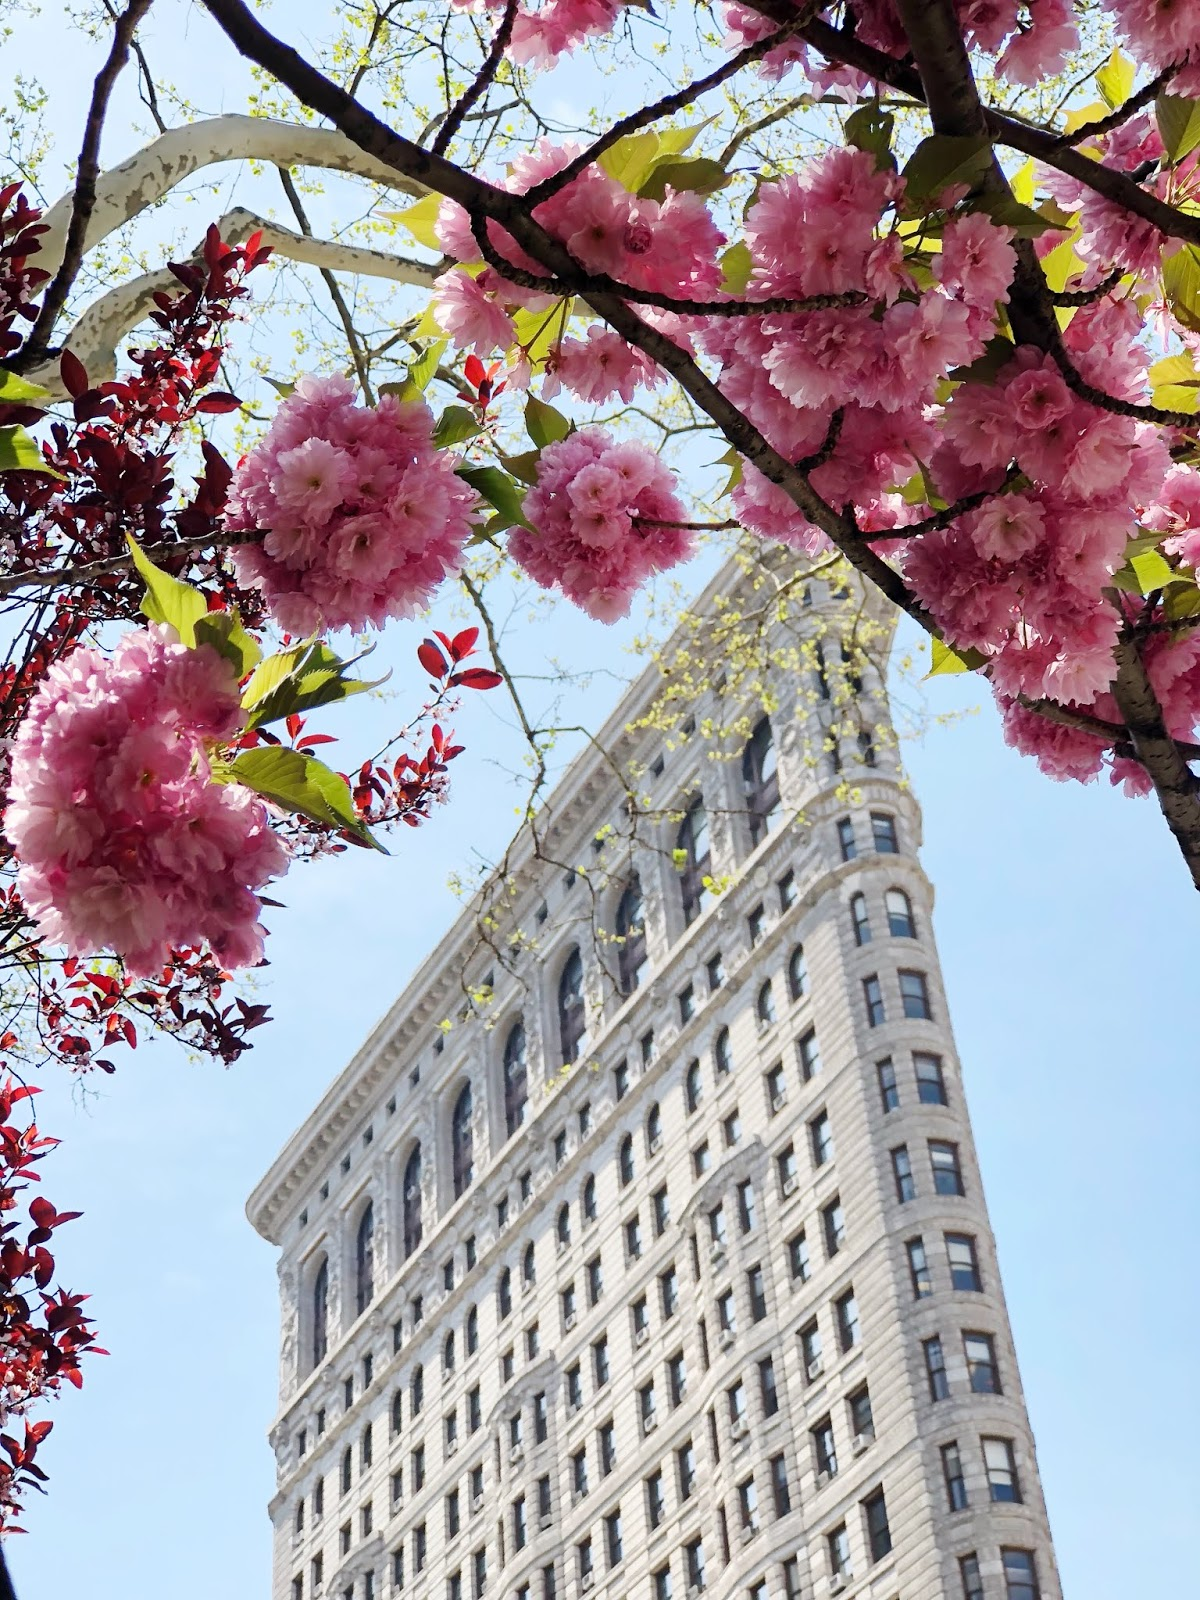 Flatiron Building surrounded by Cherry Blossoms - New York City Spring 2018